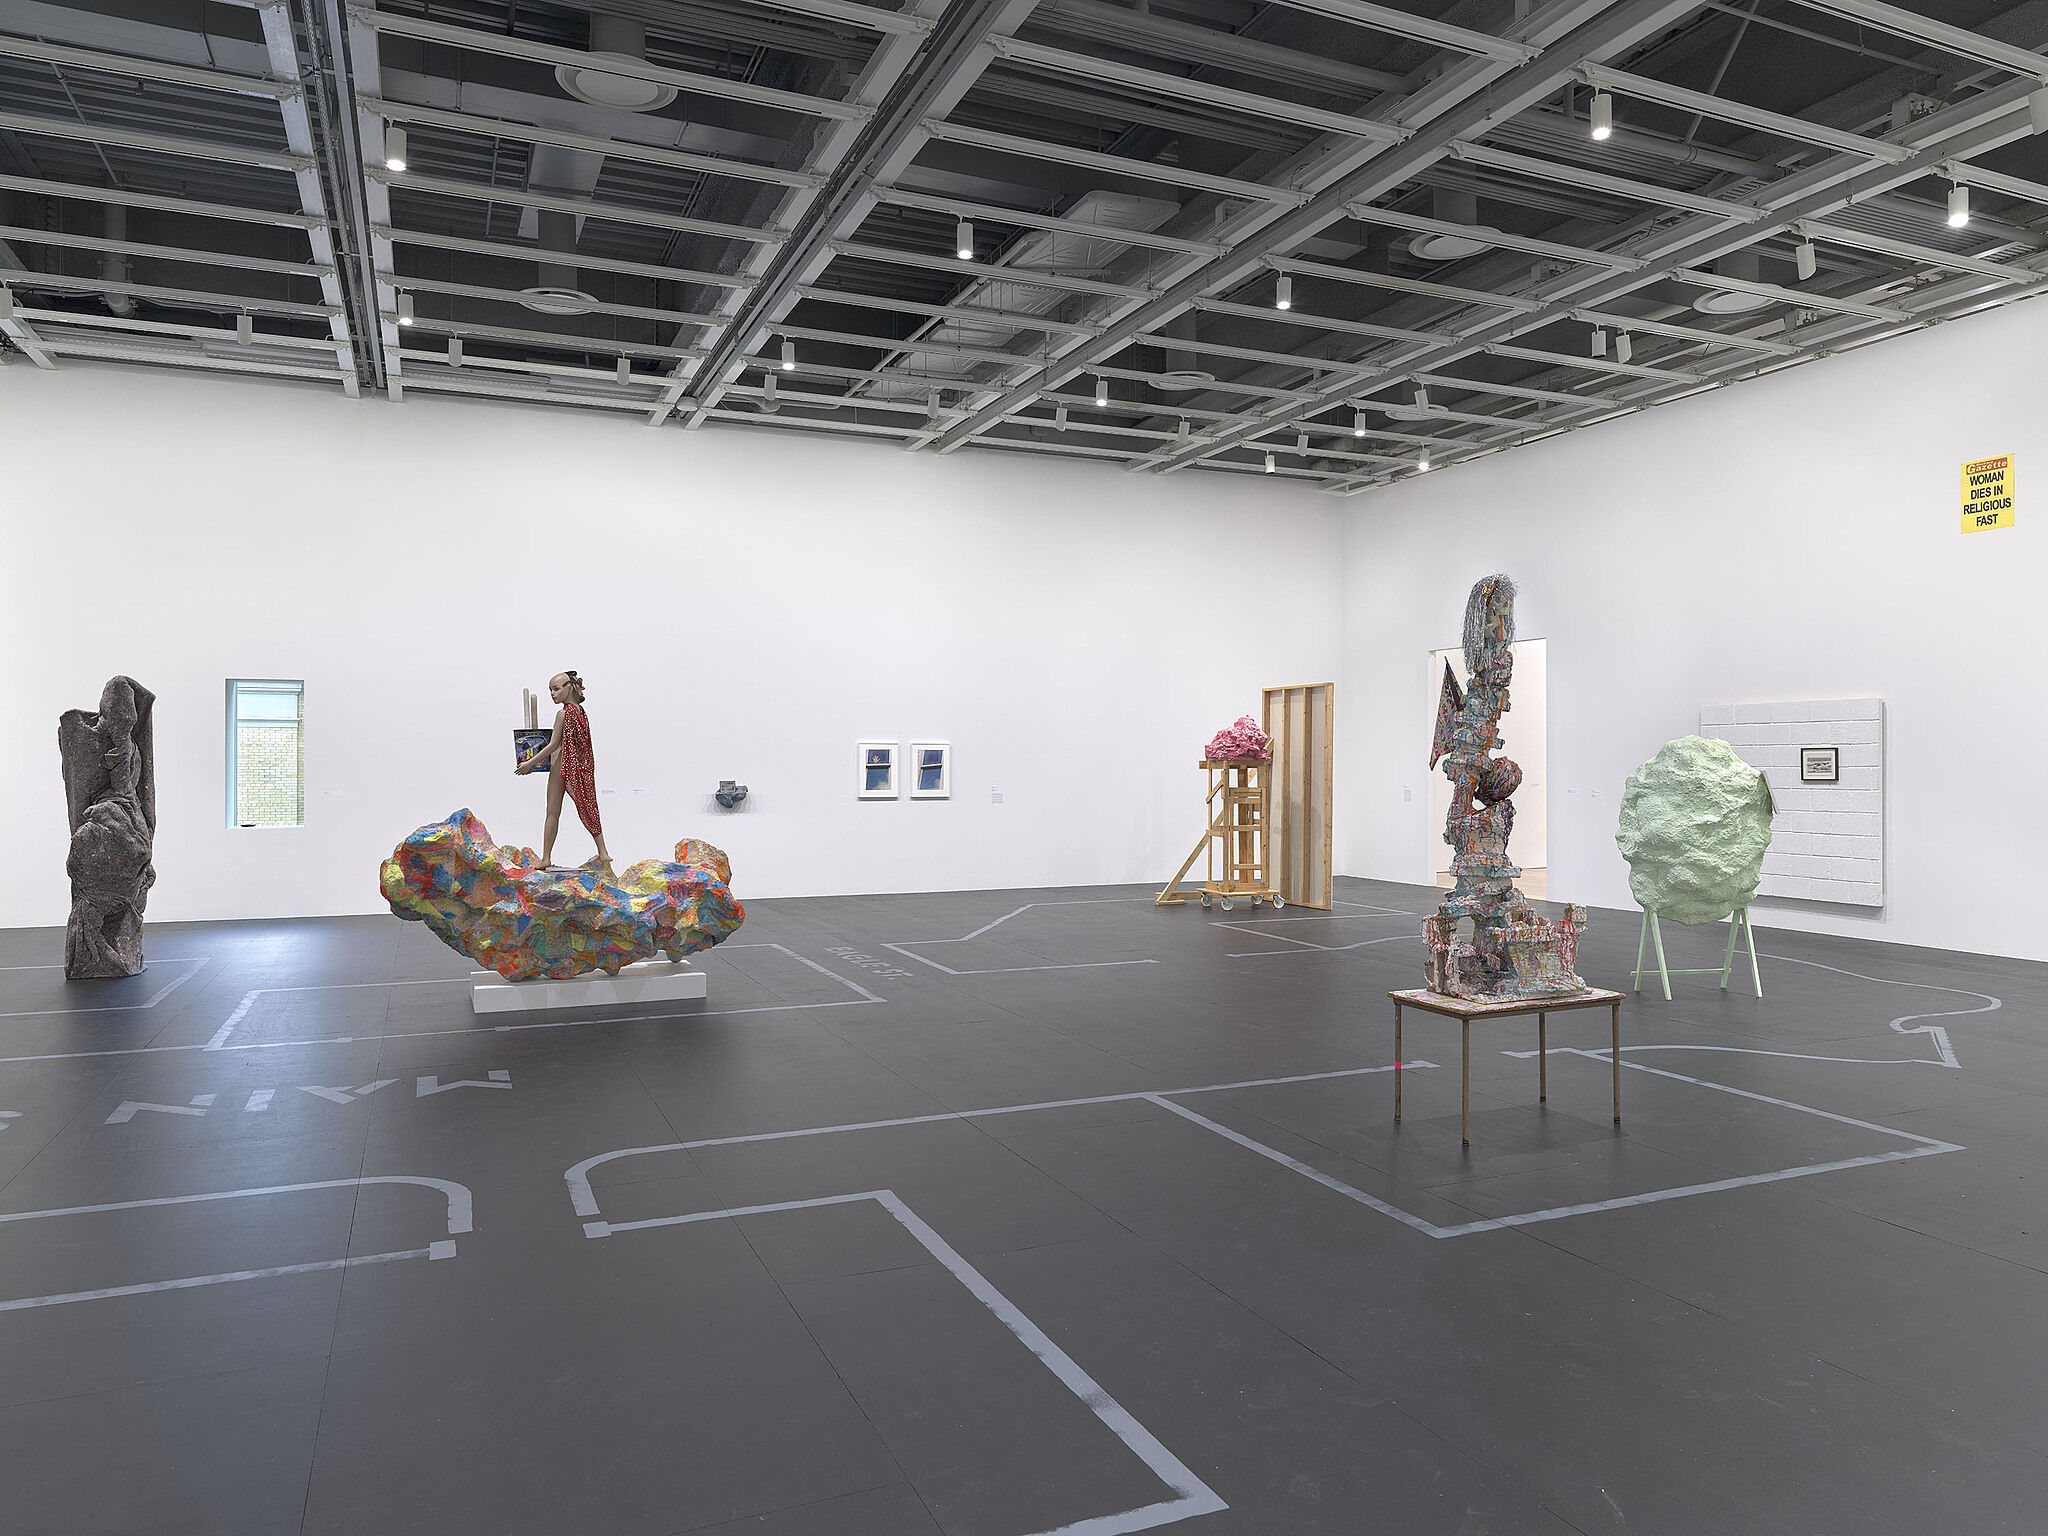 An image of the Whitney galleries with various sculptures.